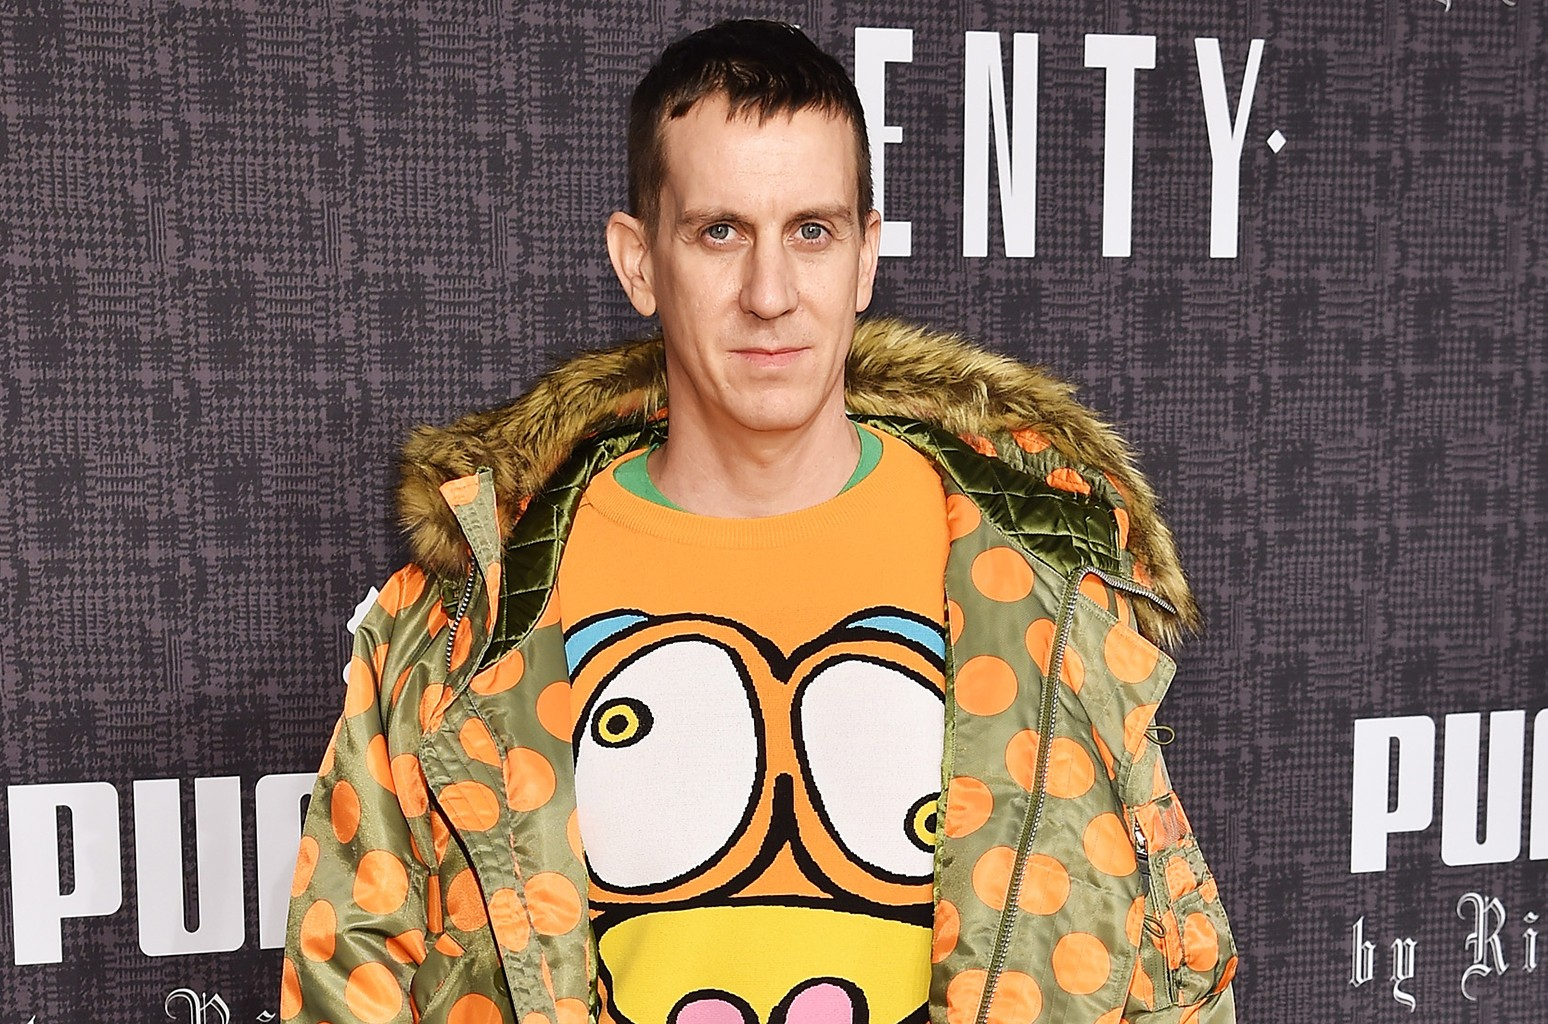 Jeremy Scott attends the FENTY PUMA by Rihanna AW16 Collection during Fall 2016 New York Fashion Week at 23 Wall Street on Feb. 12, 2016 in New York City.